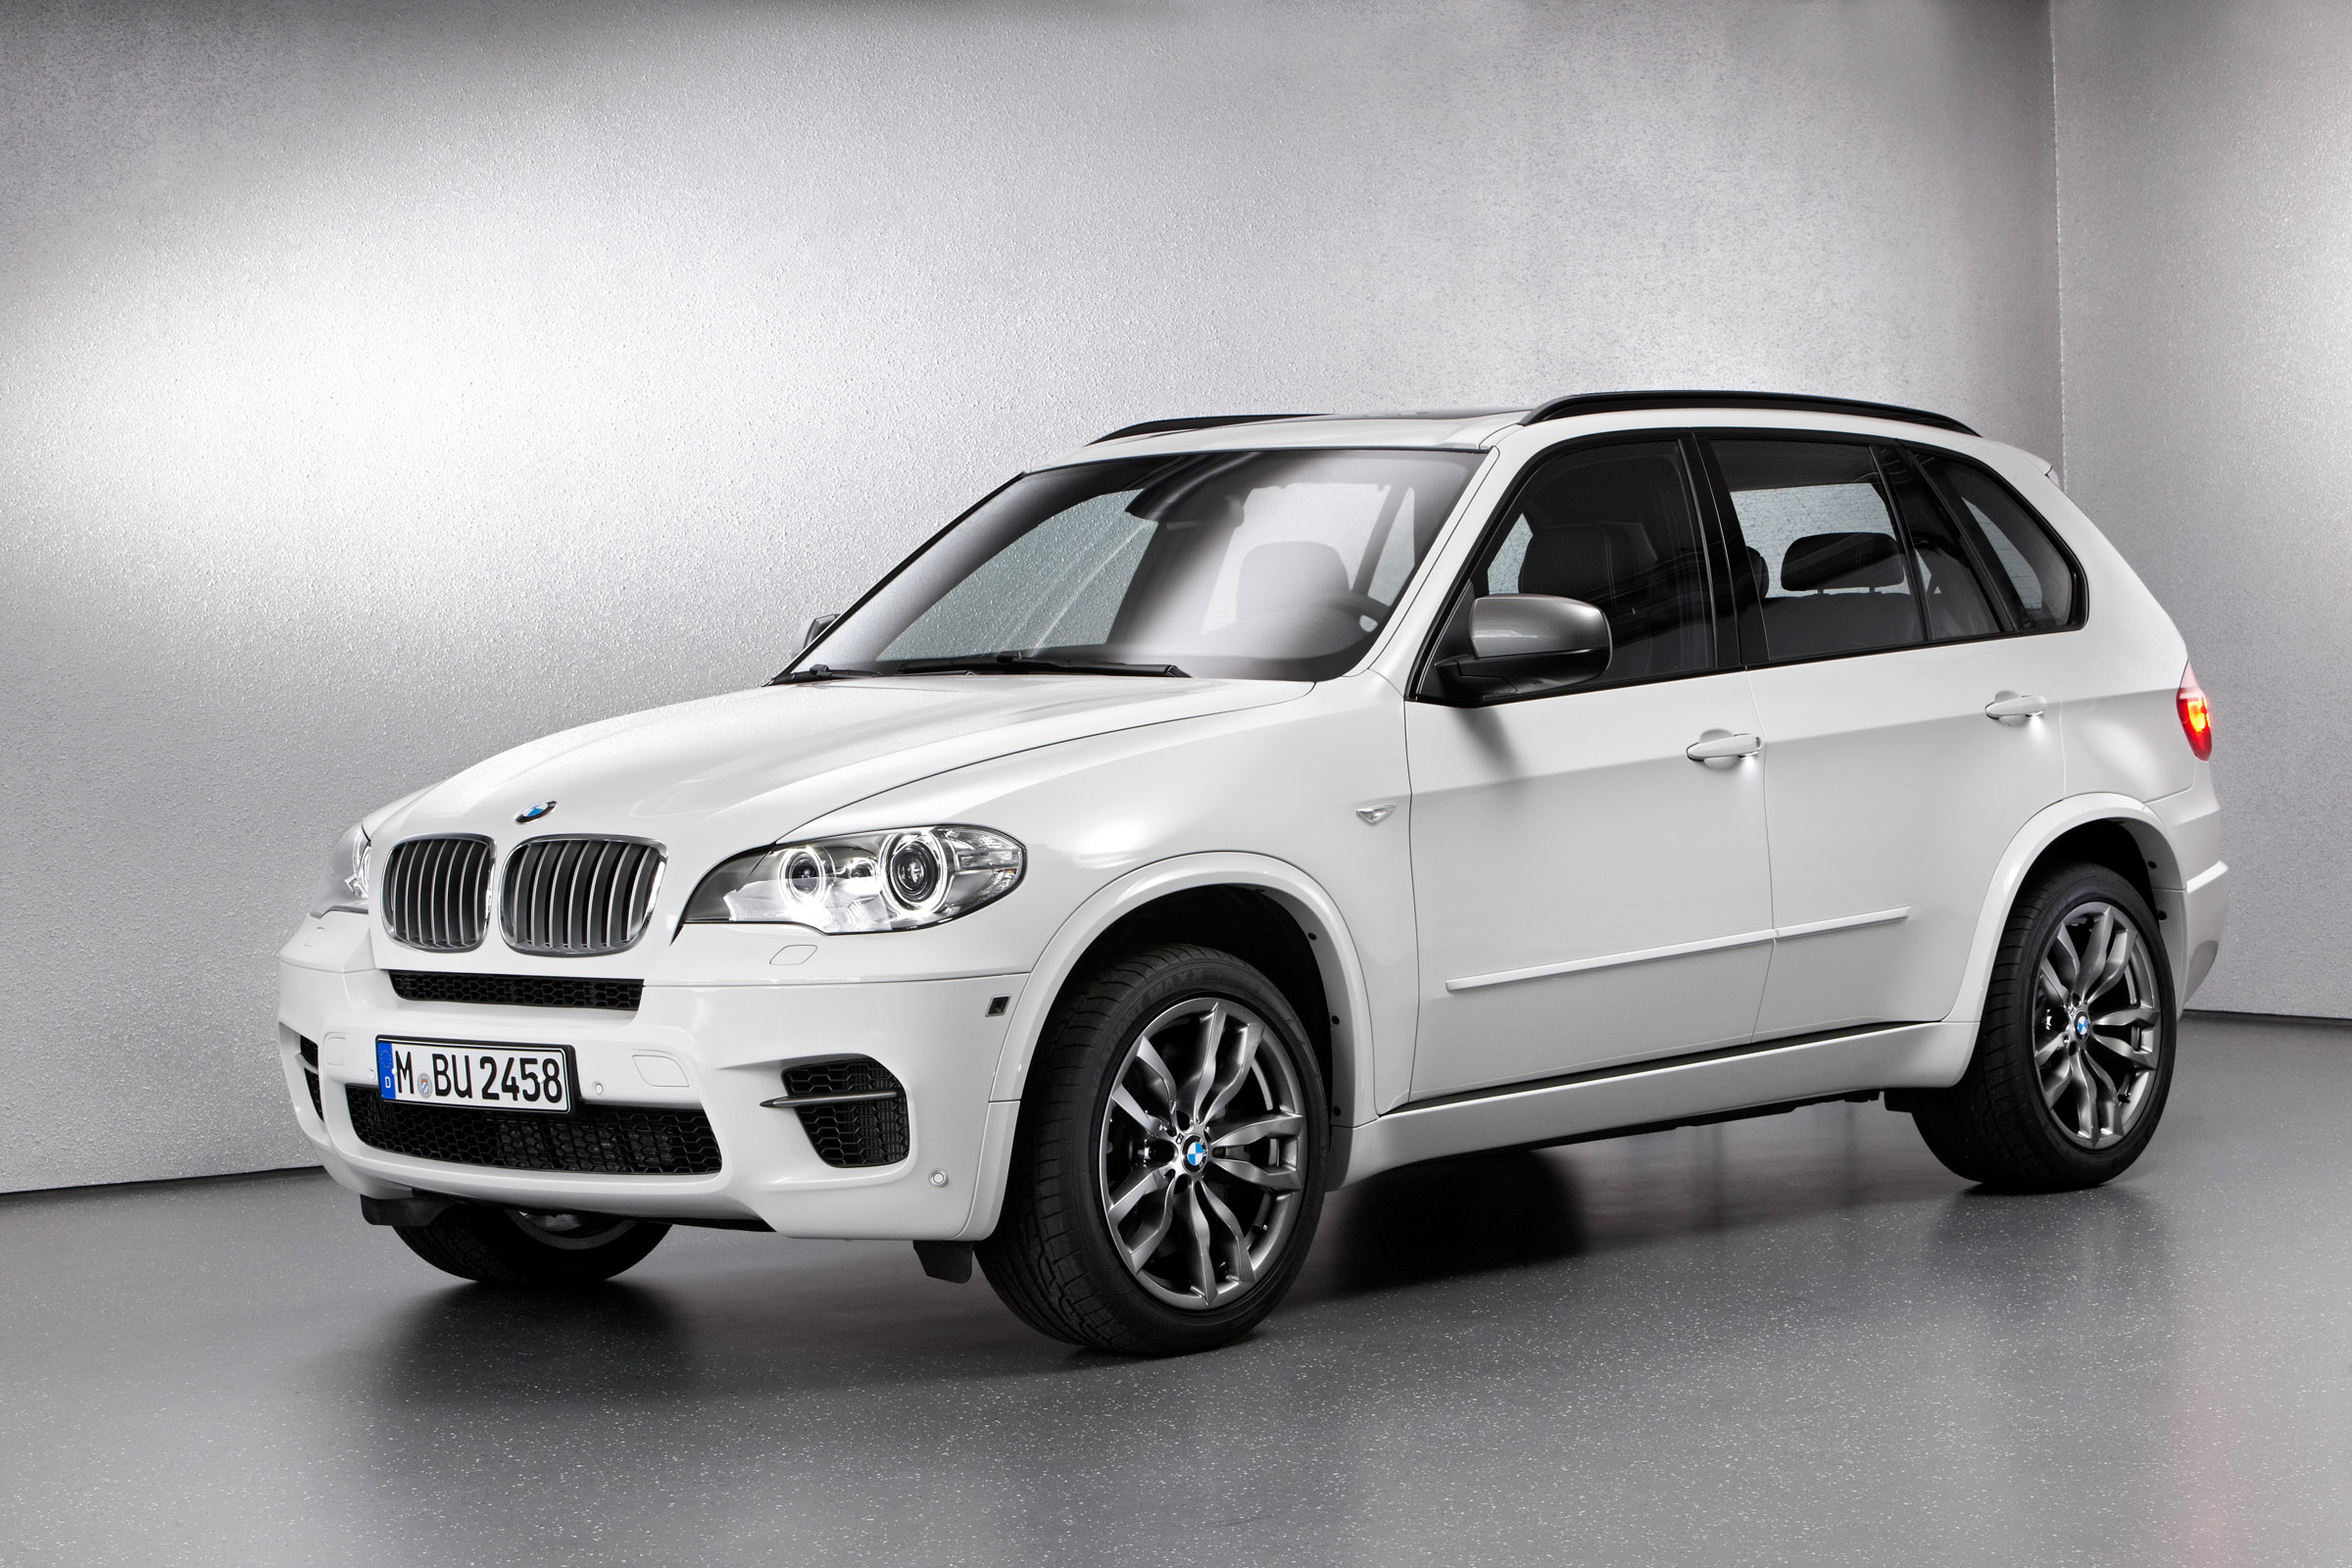 2012 bmw x5 m50d - picture 63821